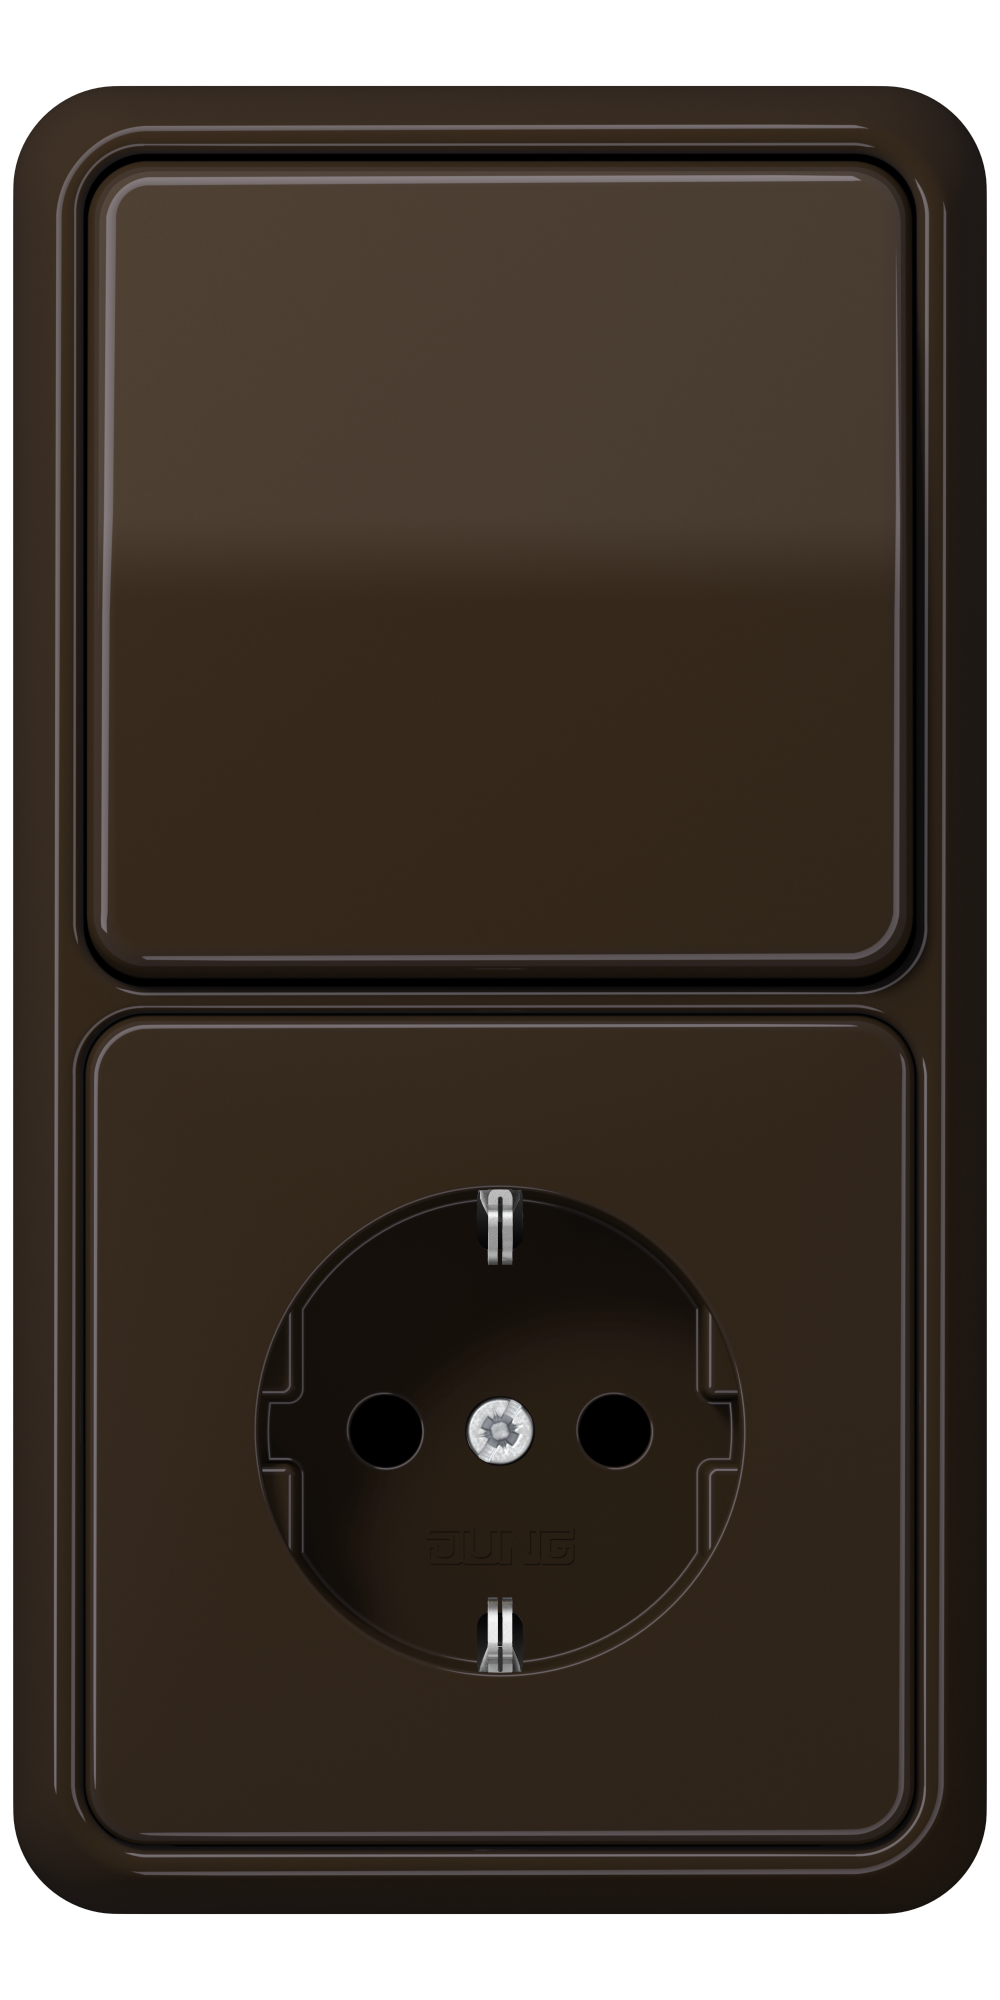 JUNG_CD500_brown_switch-socket